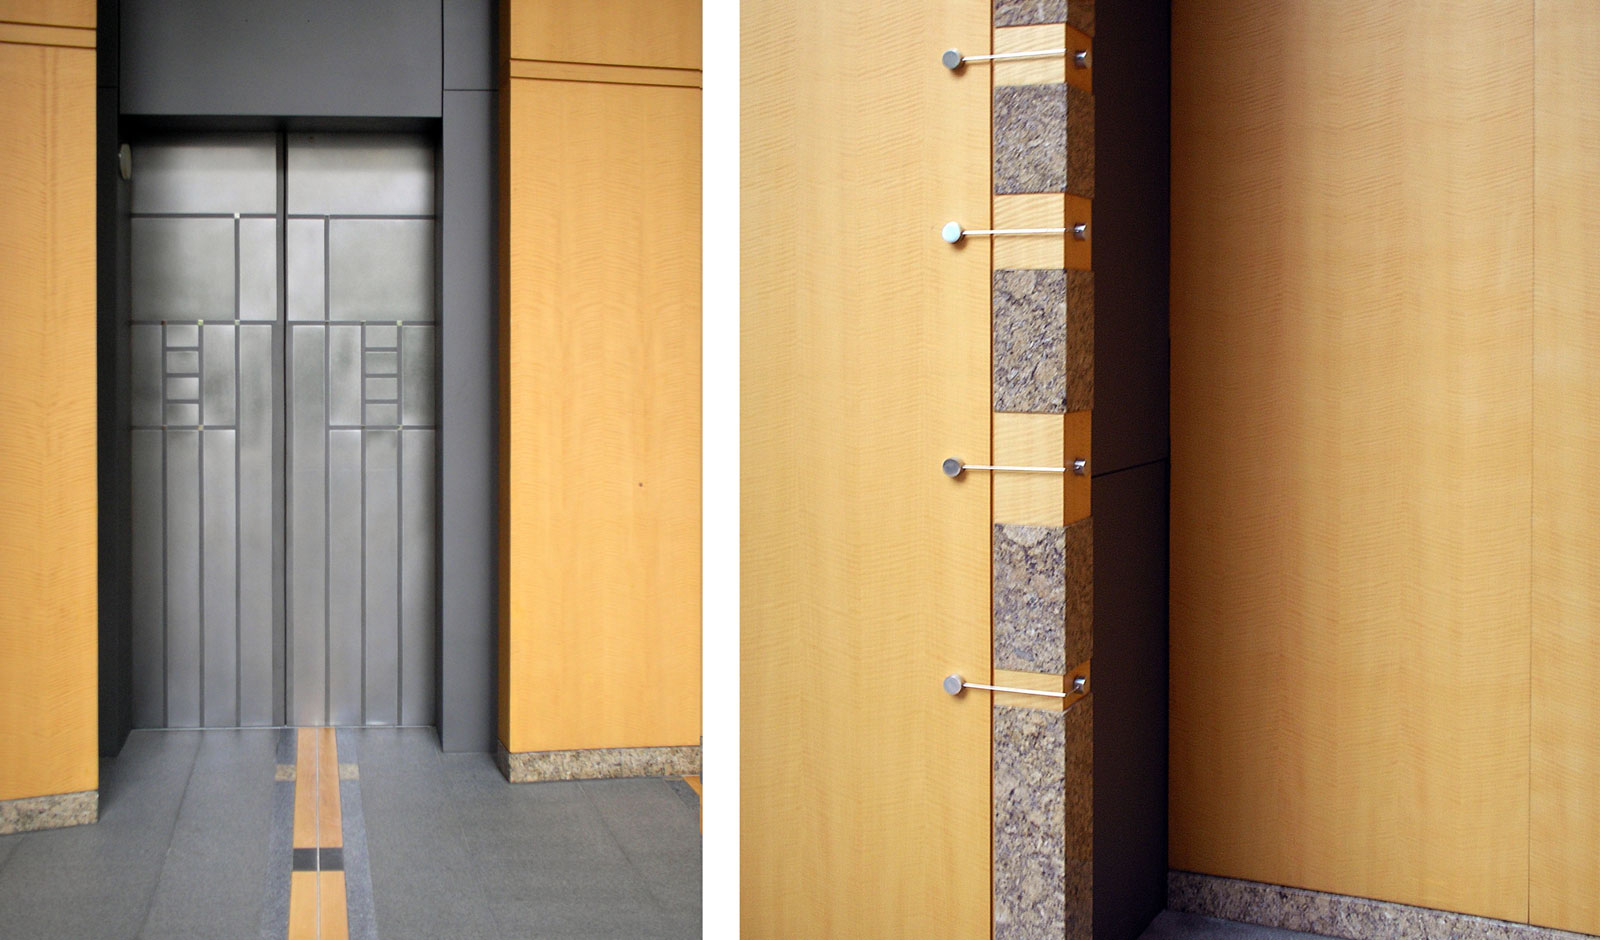 variety of interior finishes in stainless steel and wood